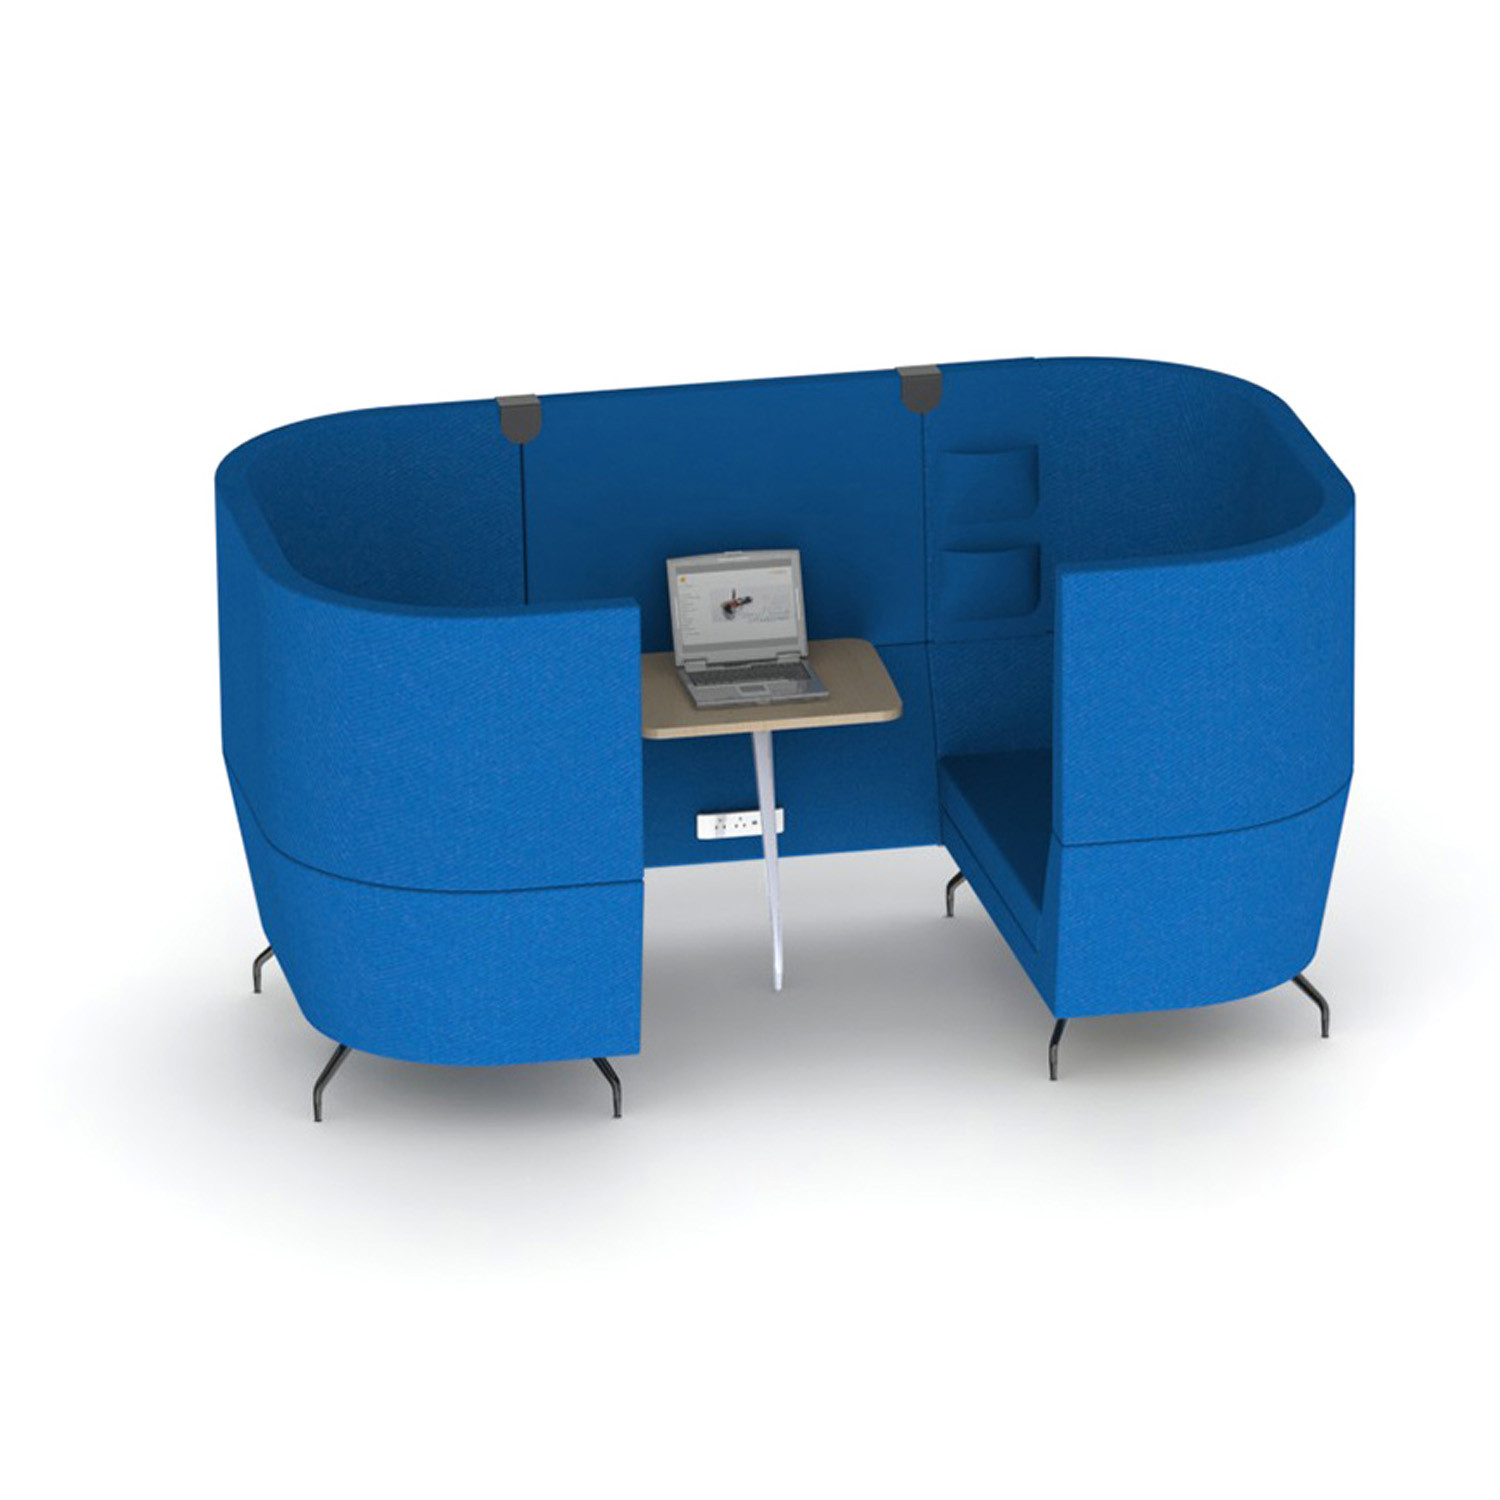 Cwtch Workbay Sofa Working Sofa System Apres Furniture